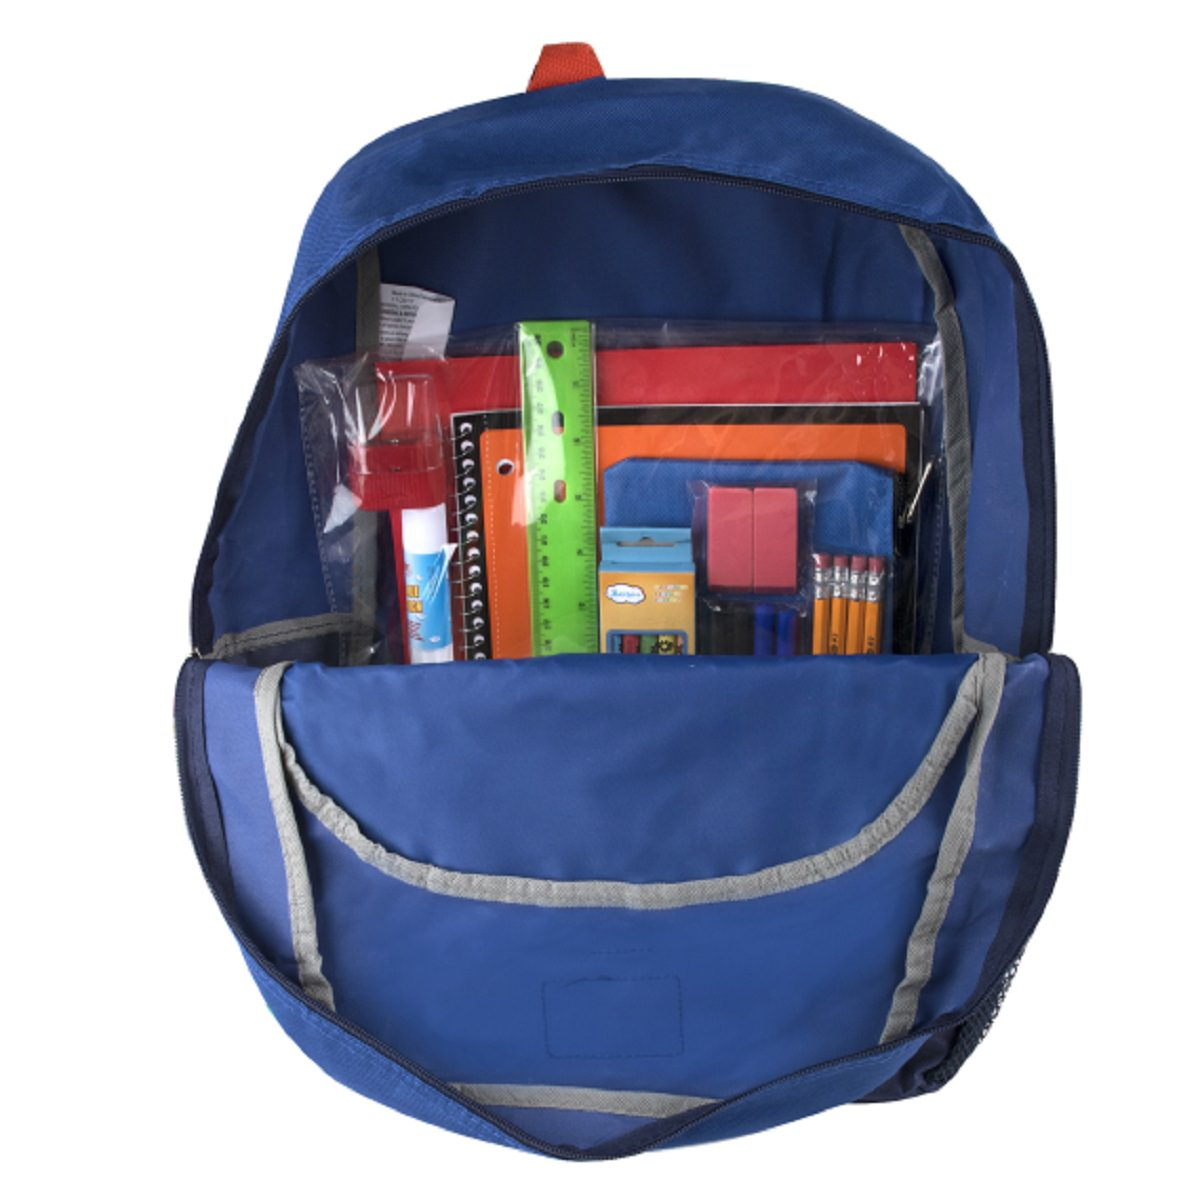 Preassembled 17 Inch Bungee Backpack  amp  12 Piece School Supply Kit